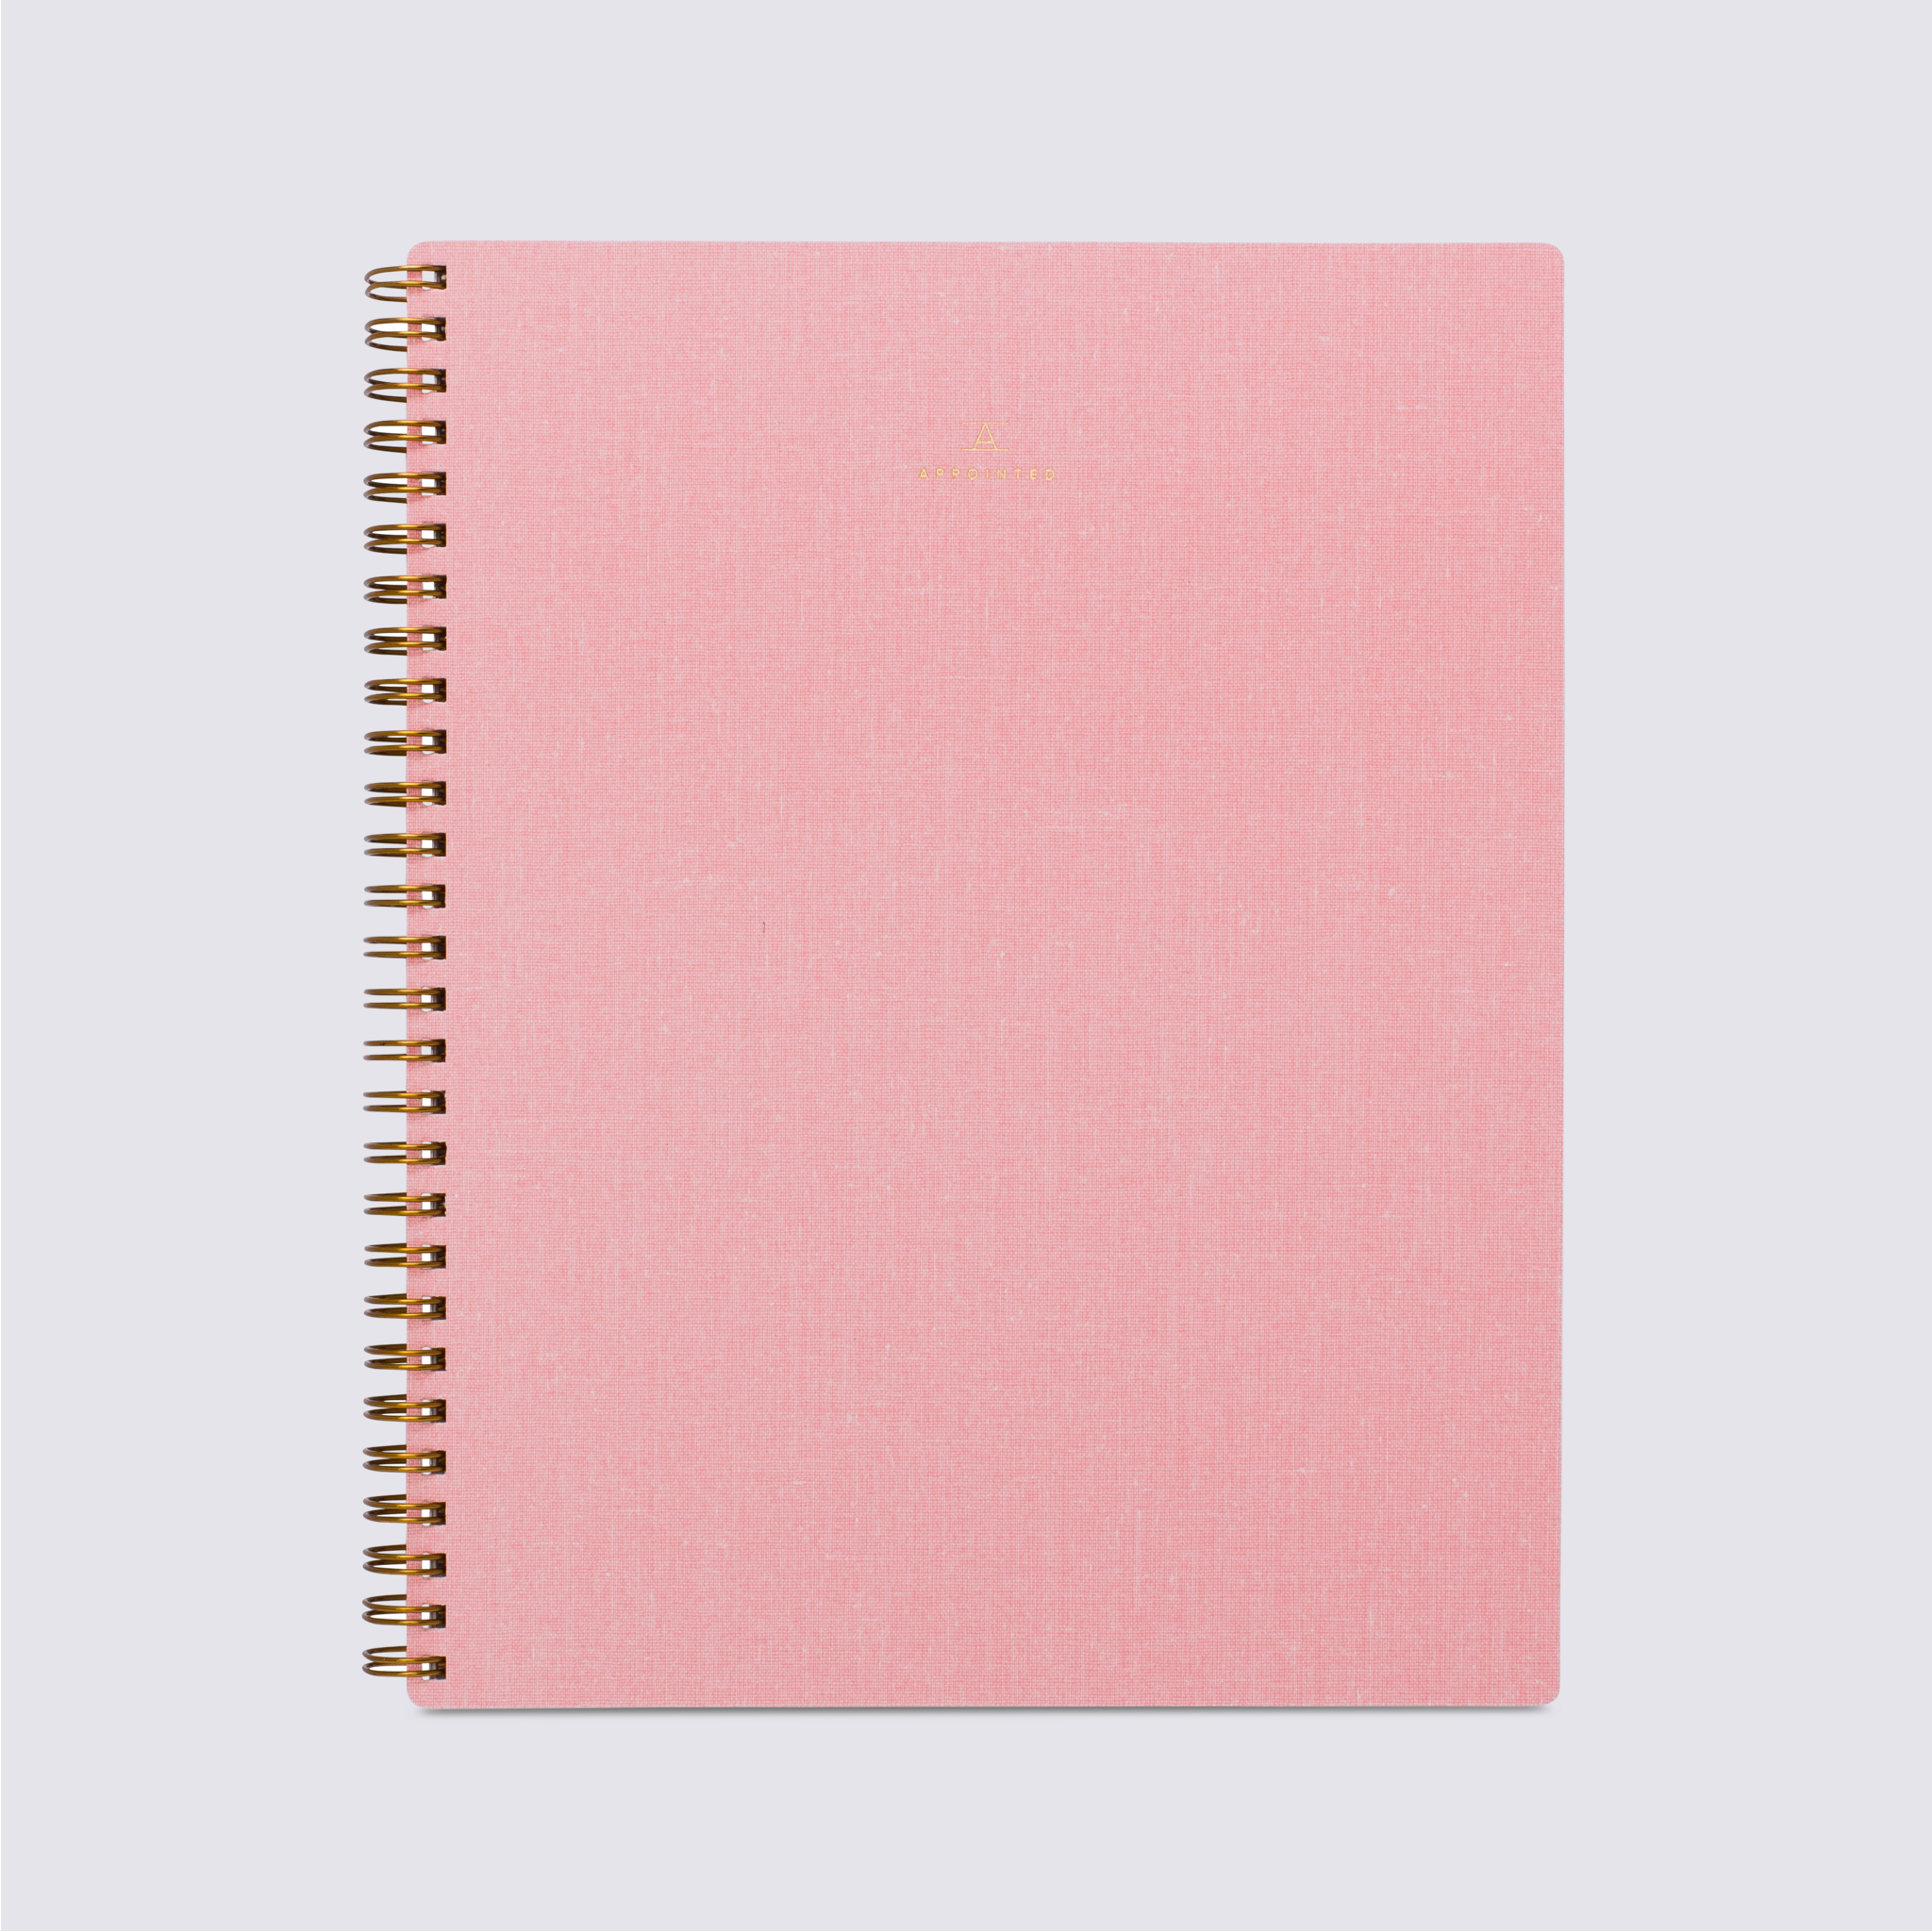 B6 Notebook - Blossom Pink